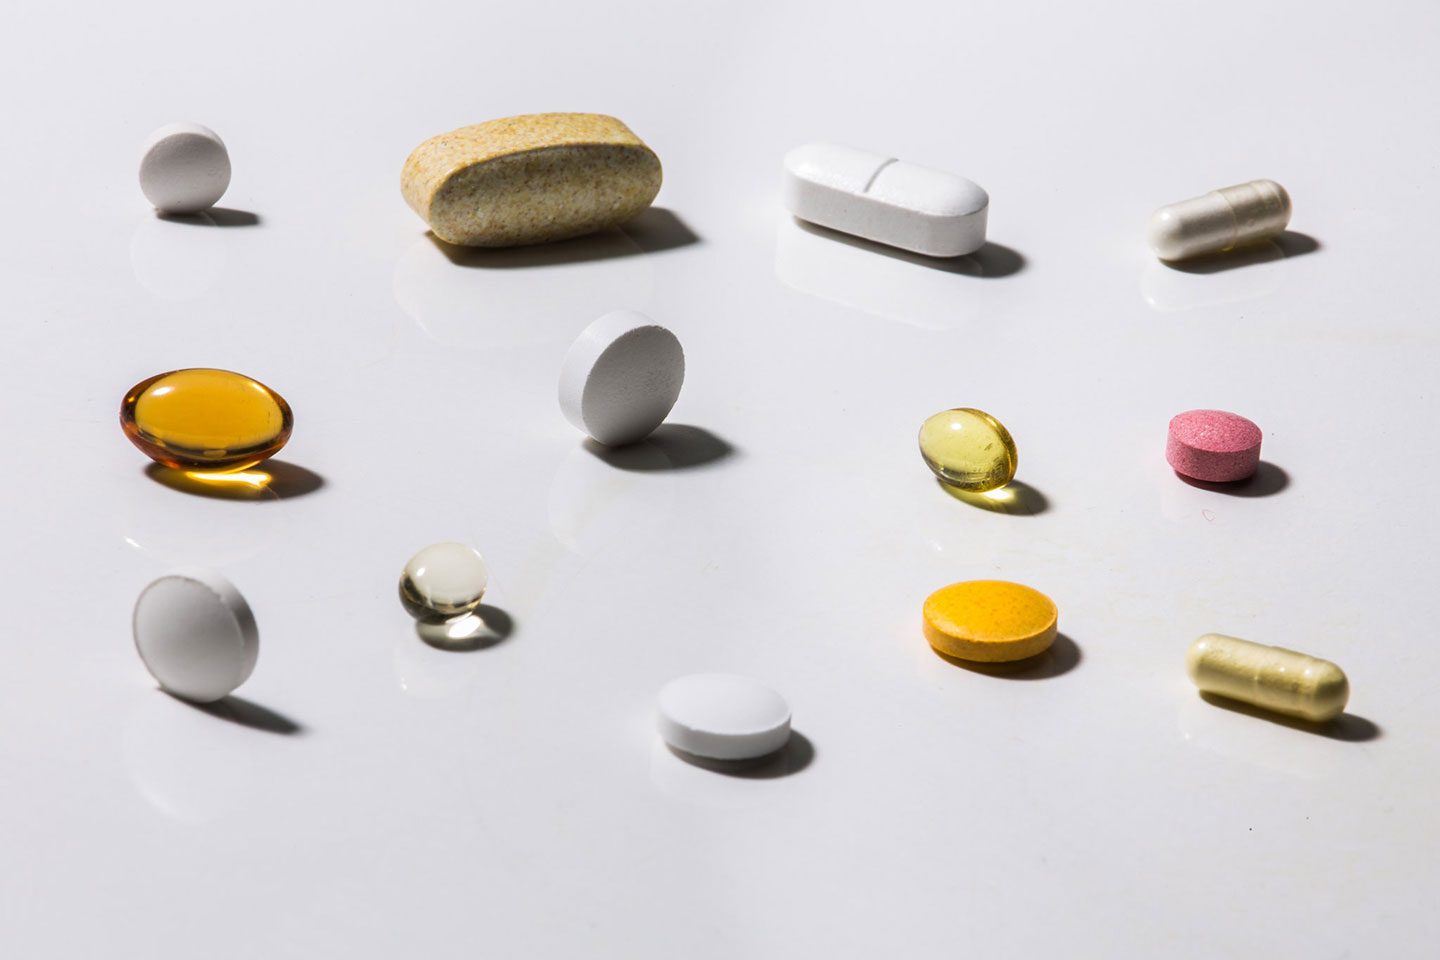 Image from NYT article - There is little evidence that vitamins and other dietary supplements can protect you from the coronavirus in any consistent or significant way.Credit: Tony Cenicola/The New York Times